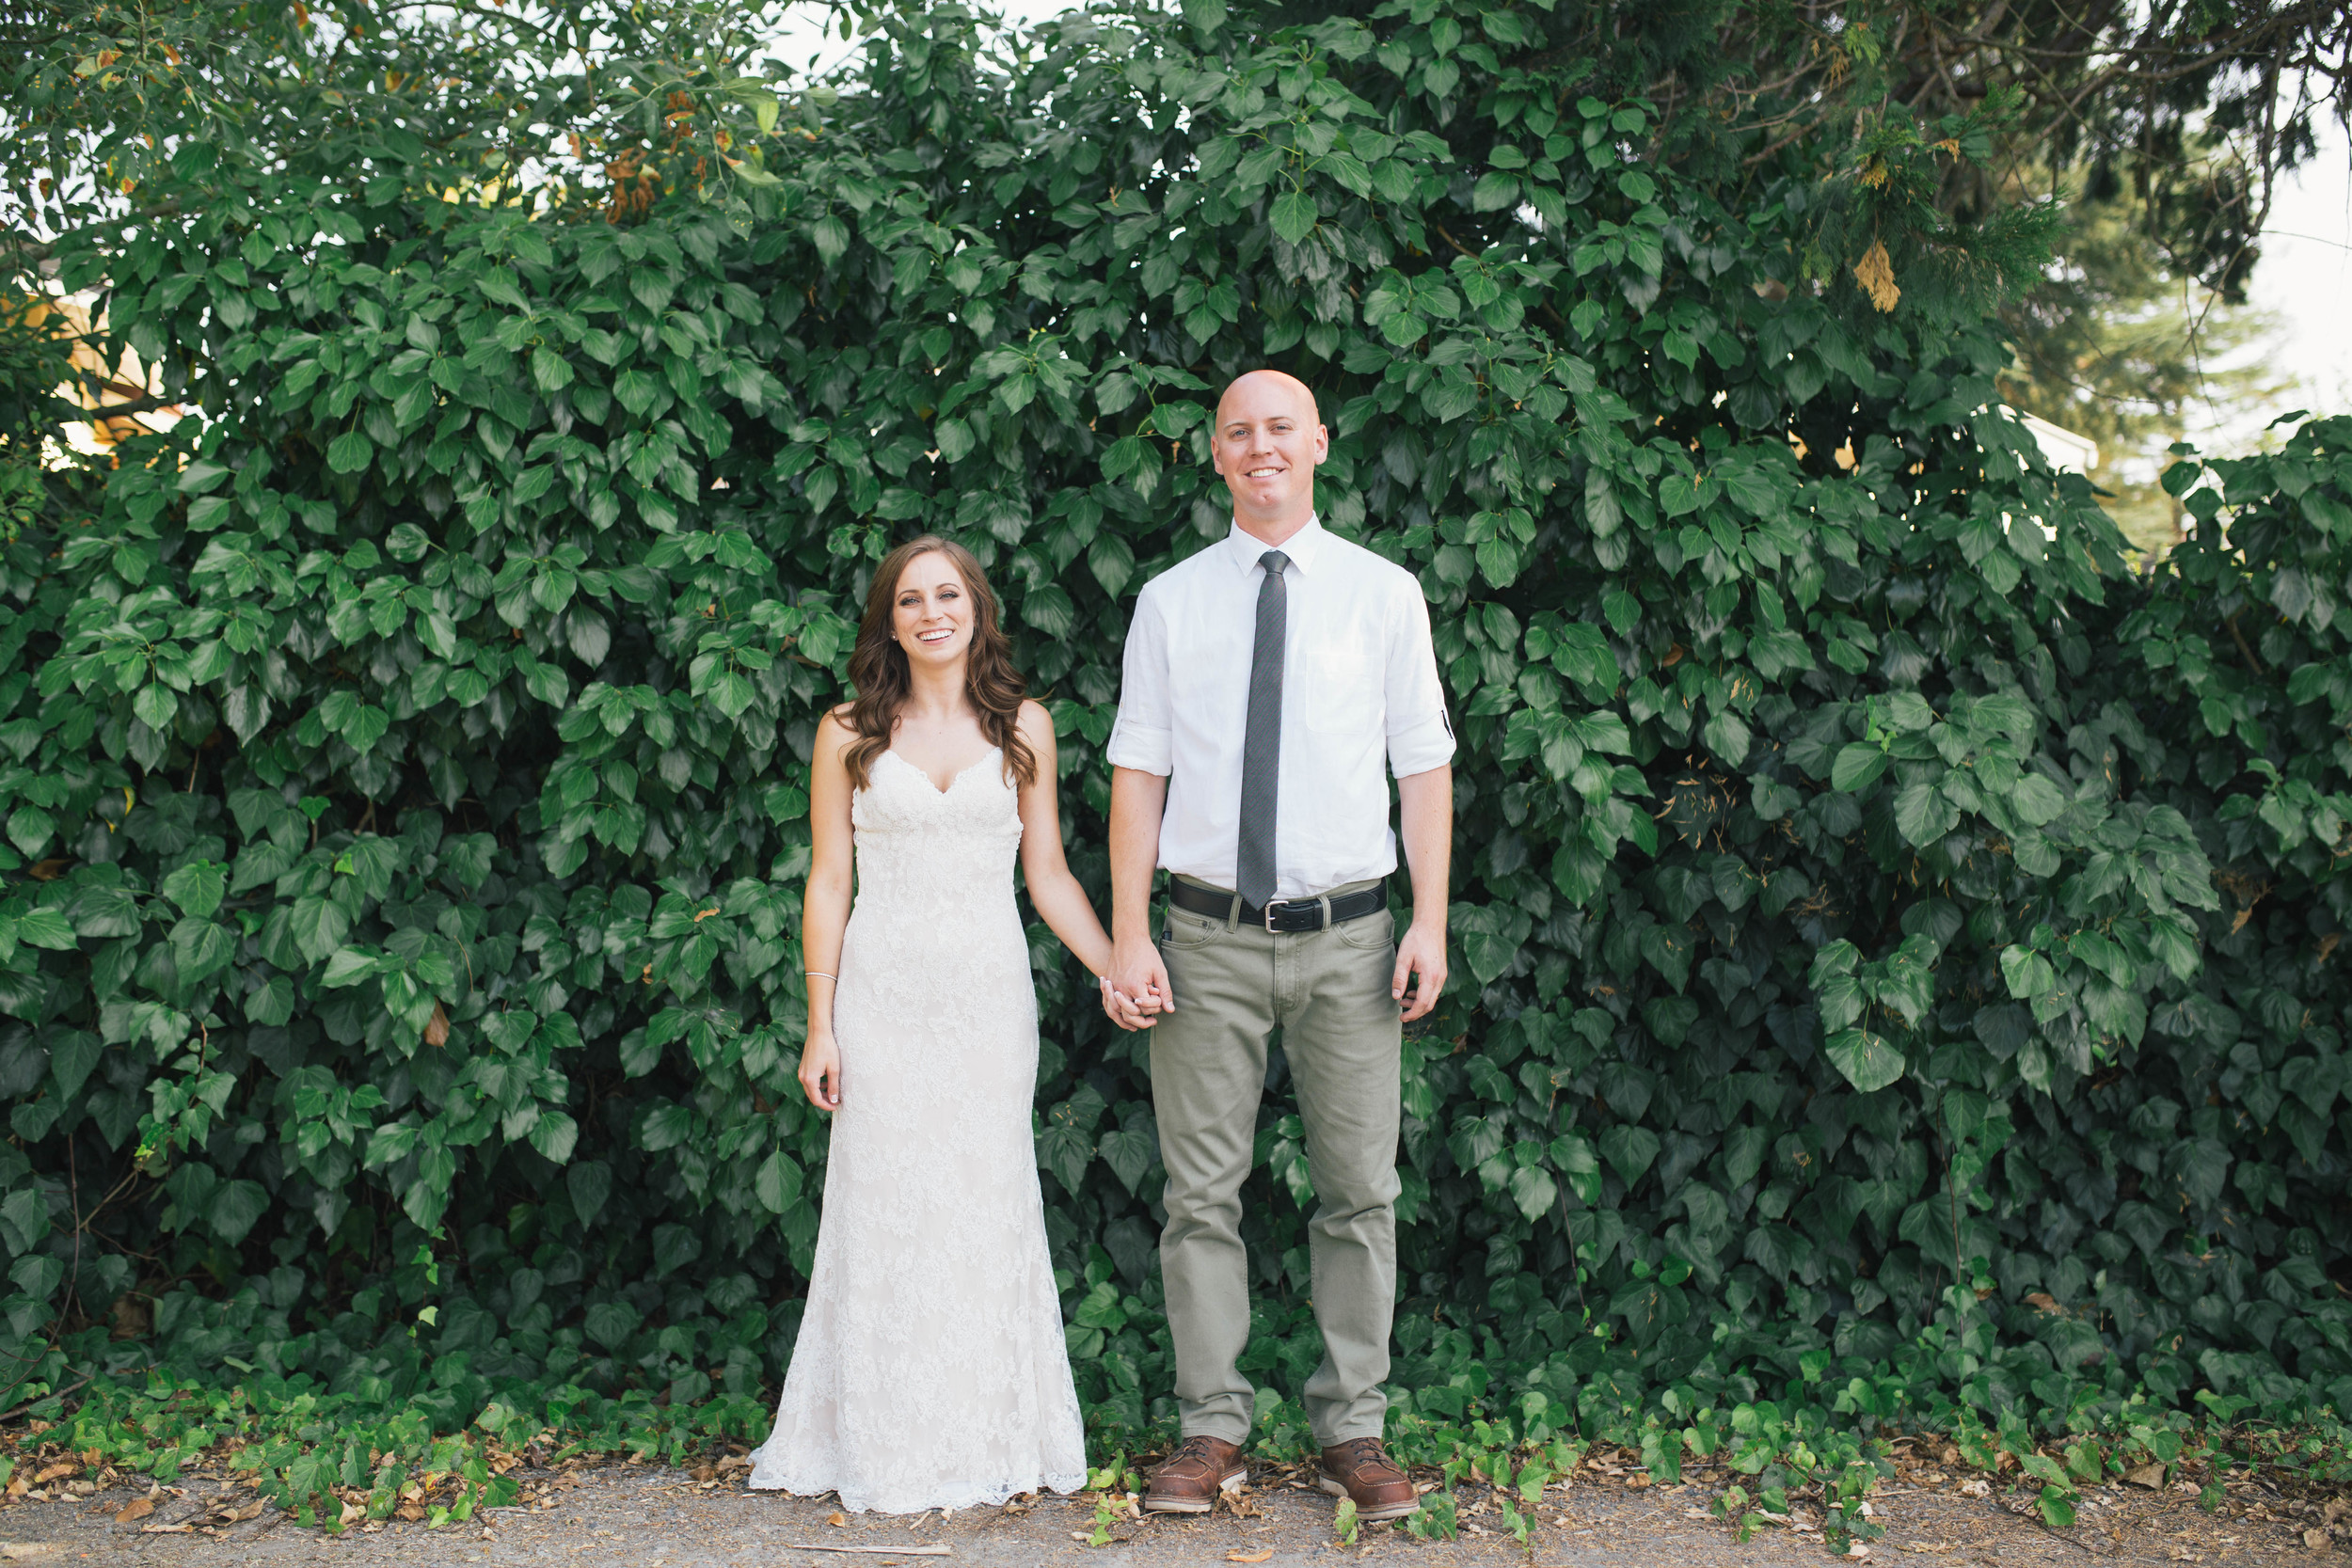 sonoma-county-wedding-photographer-portraits-couples-bride-groom-nature